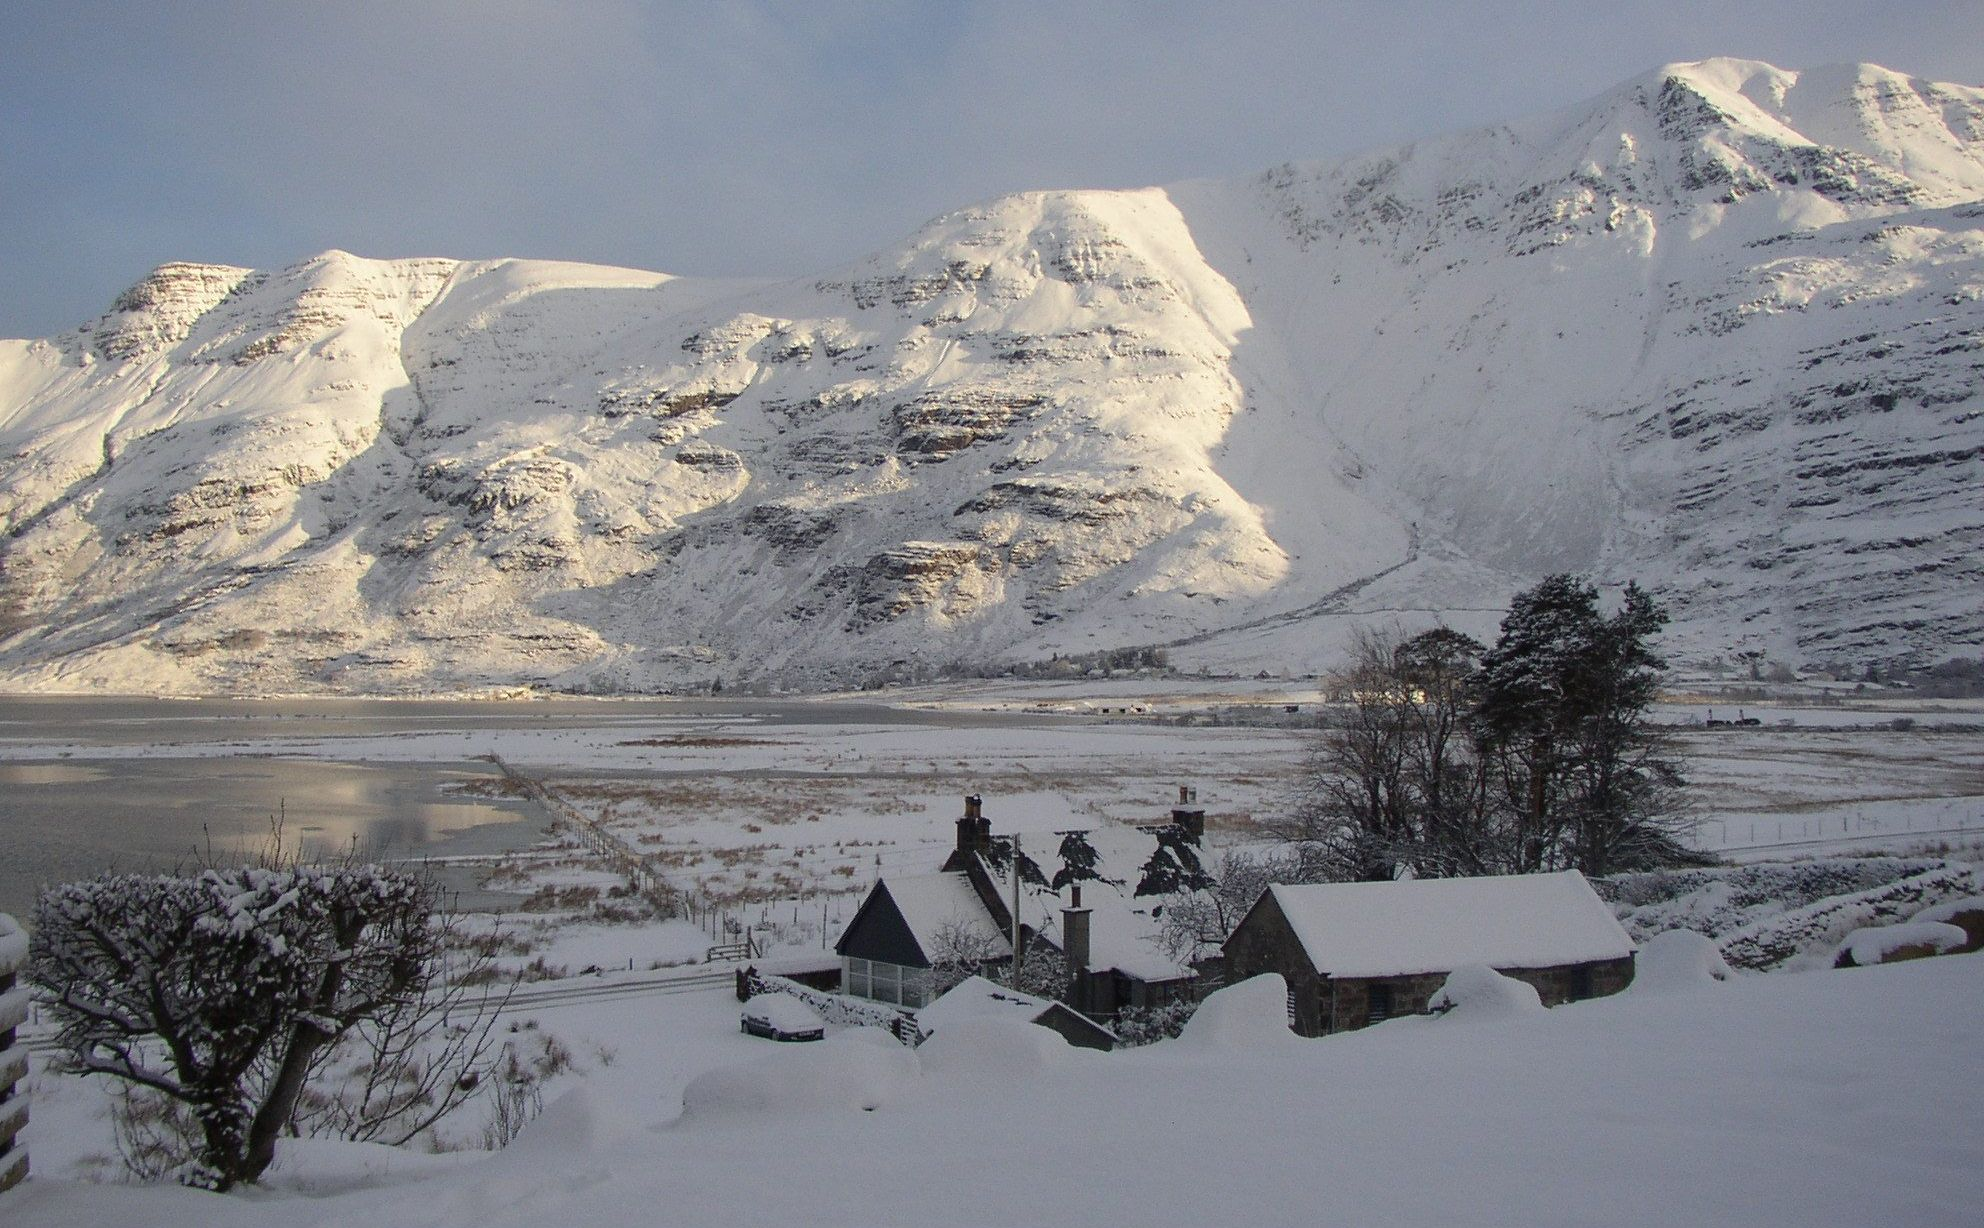 Winter on Liathach in the Torridon Region of the NW Highlands of Scotland